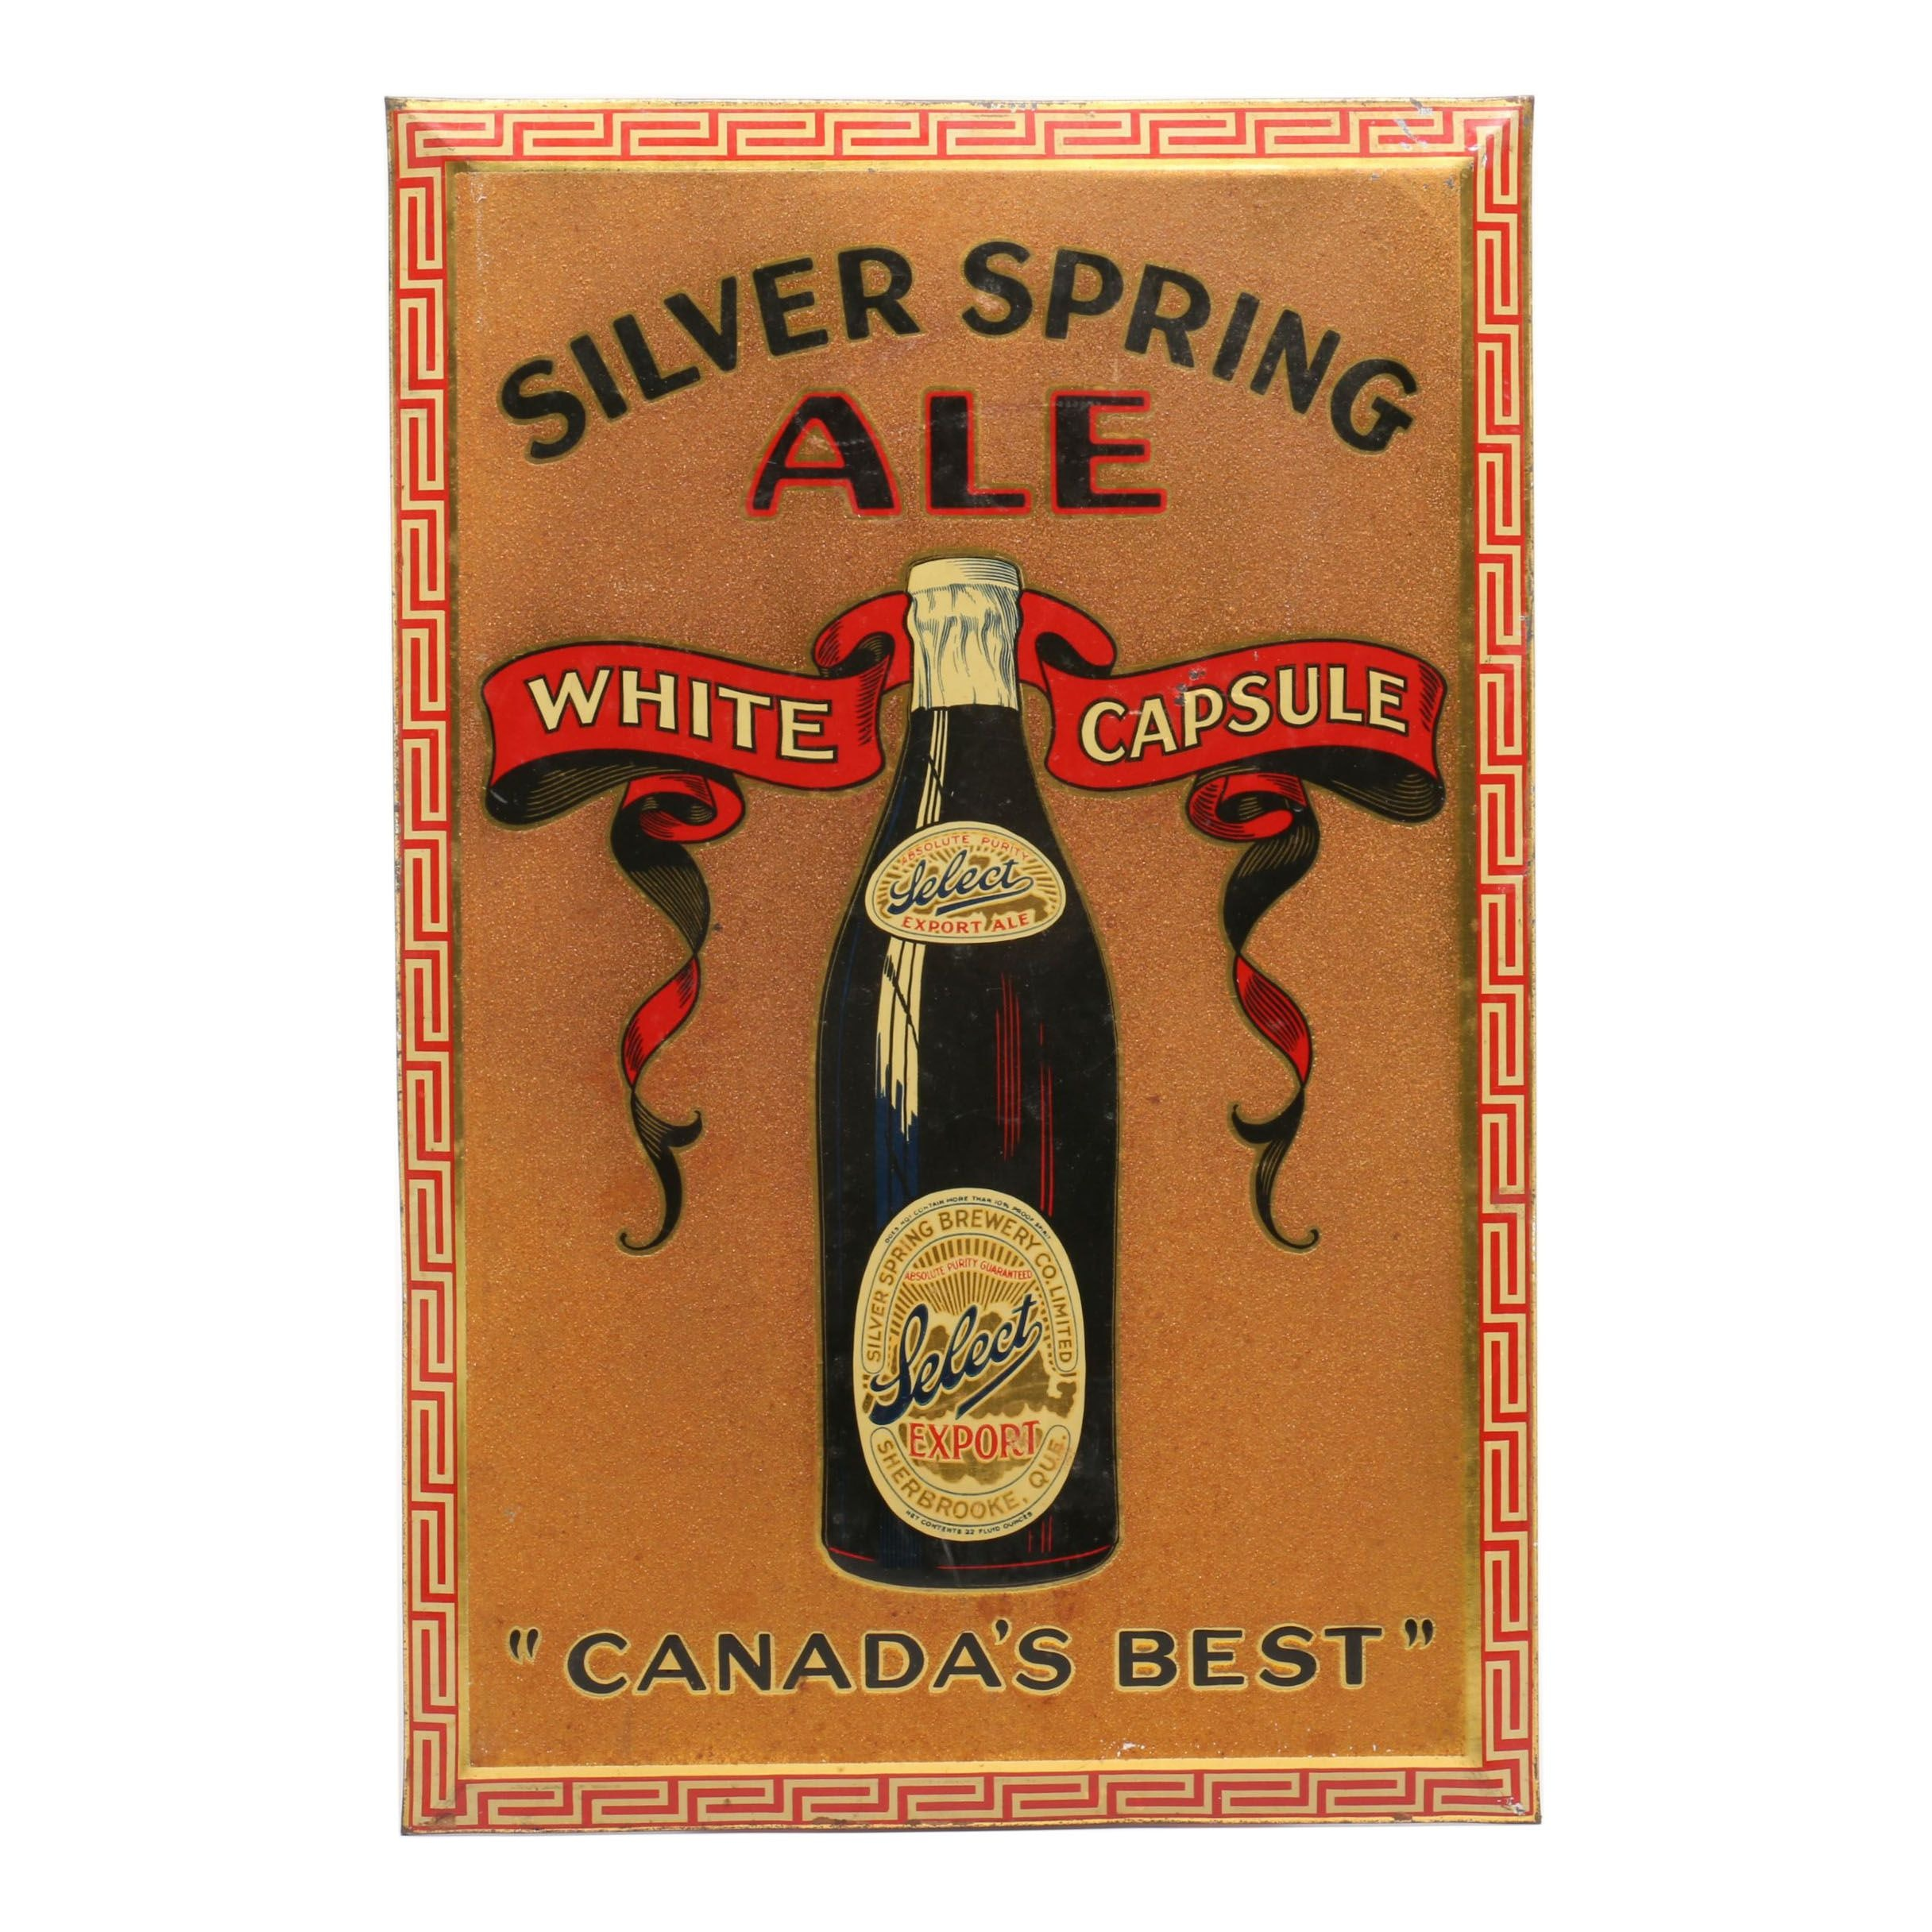 Silver Springs Brewery Co. Limited Advertising Sign, Mid-Century